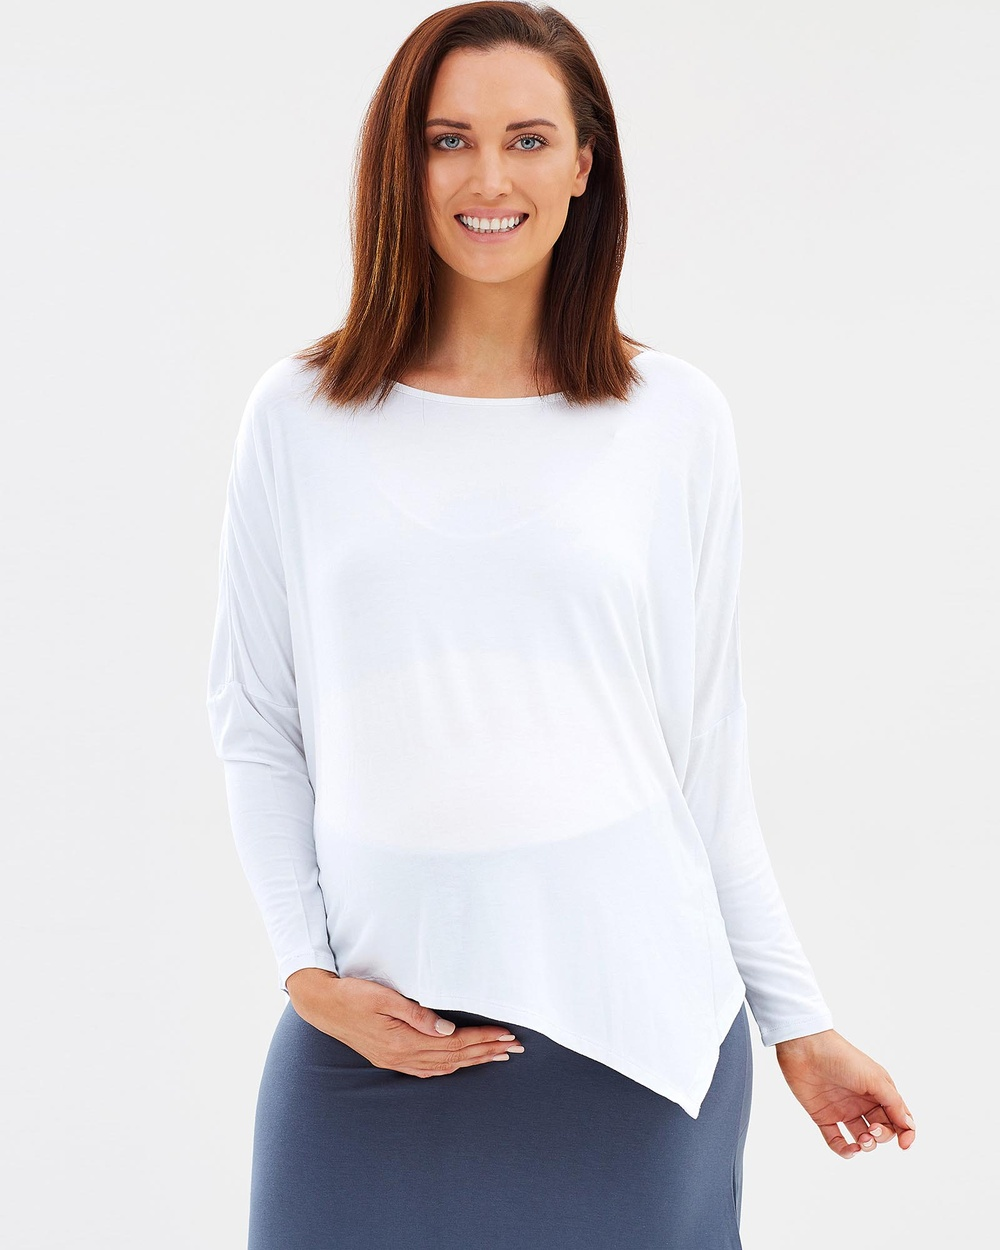 Bamboo Body Bamboo Relax Boatneck Long Sleeve Top Tops White Bamboo Relax Boatneck Long Sleeve Top